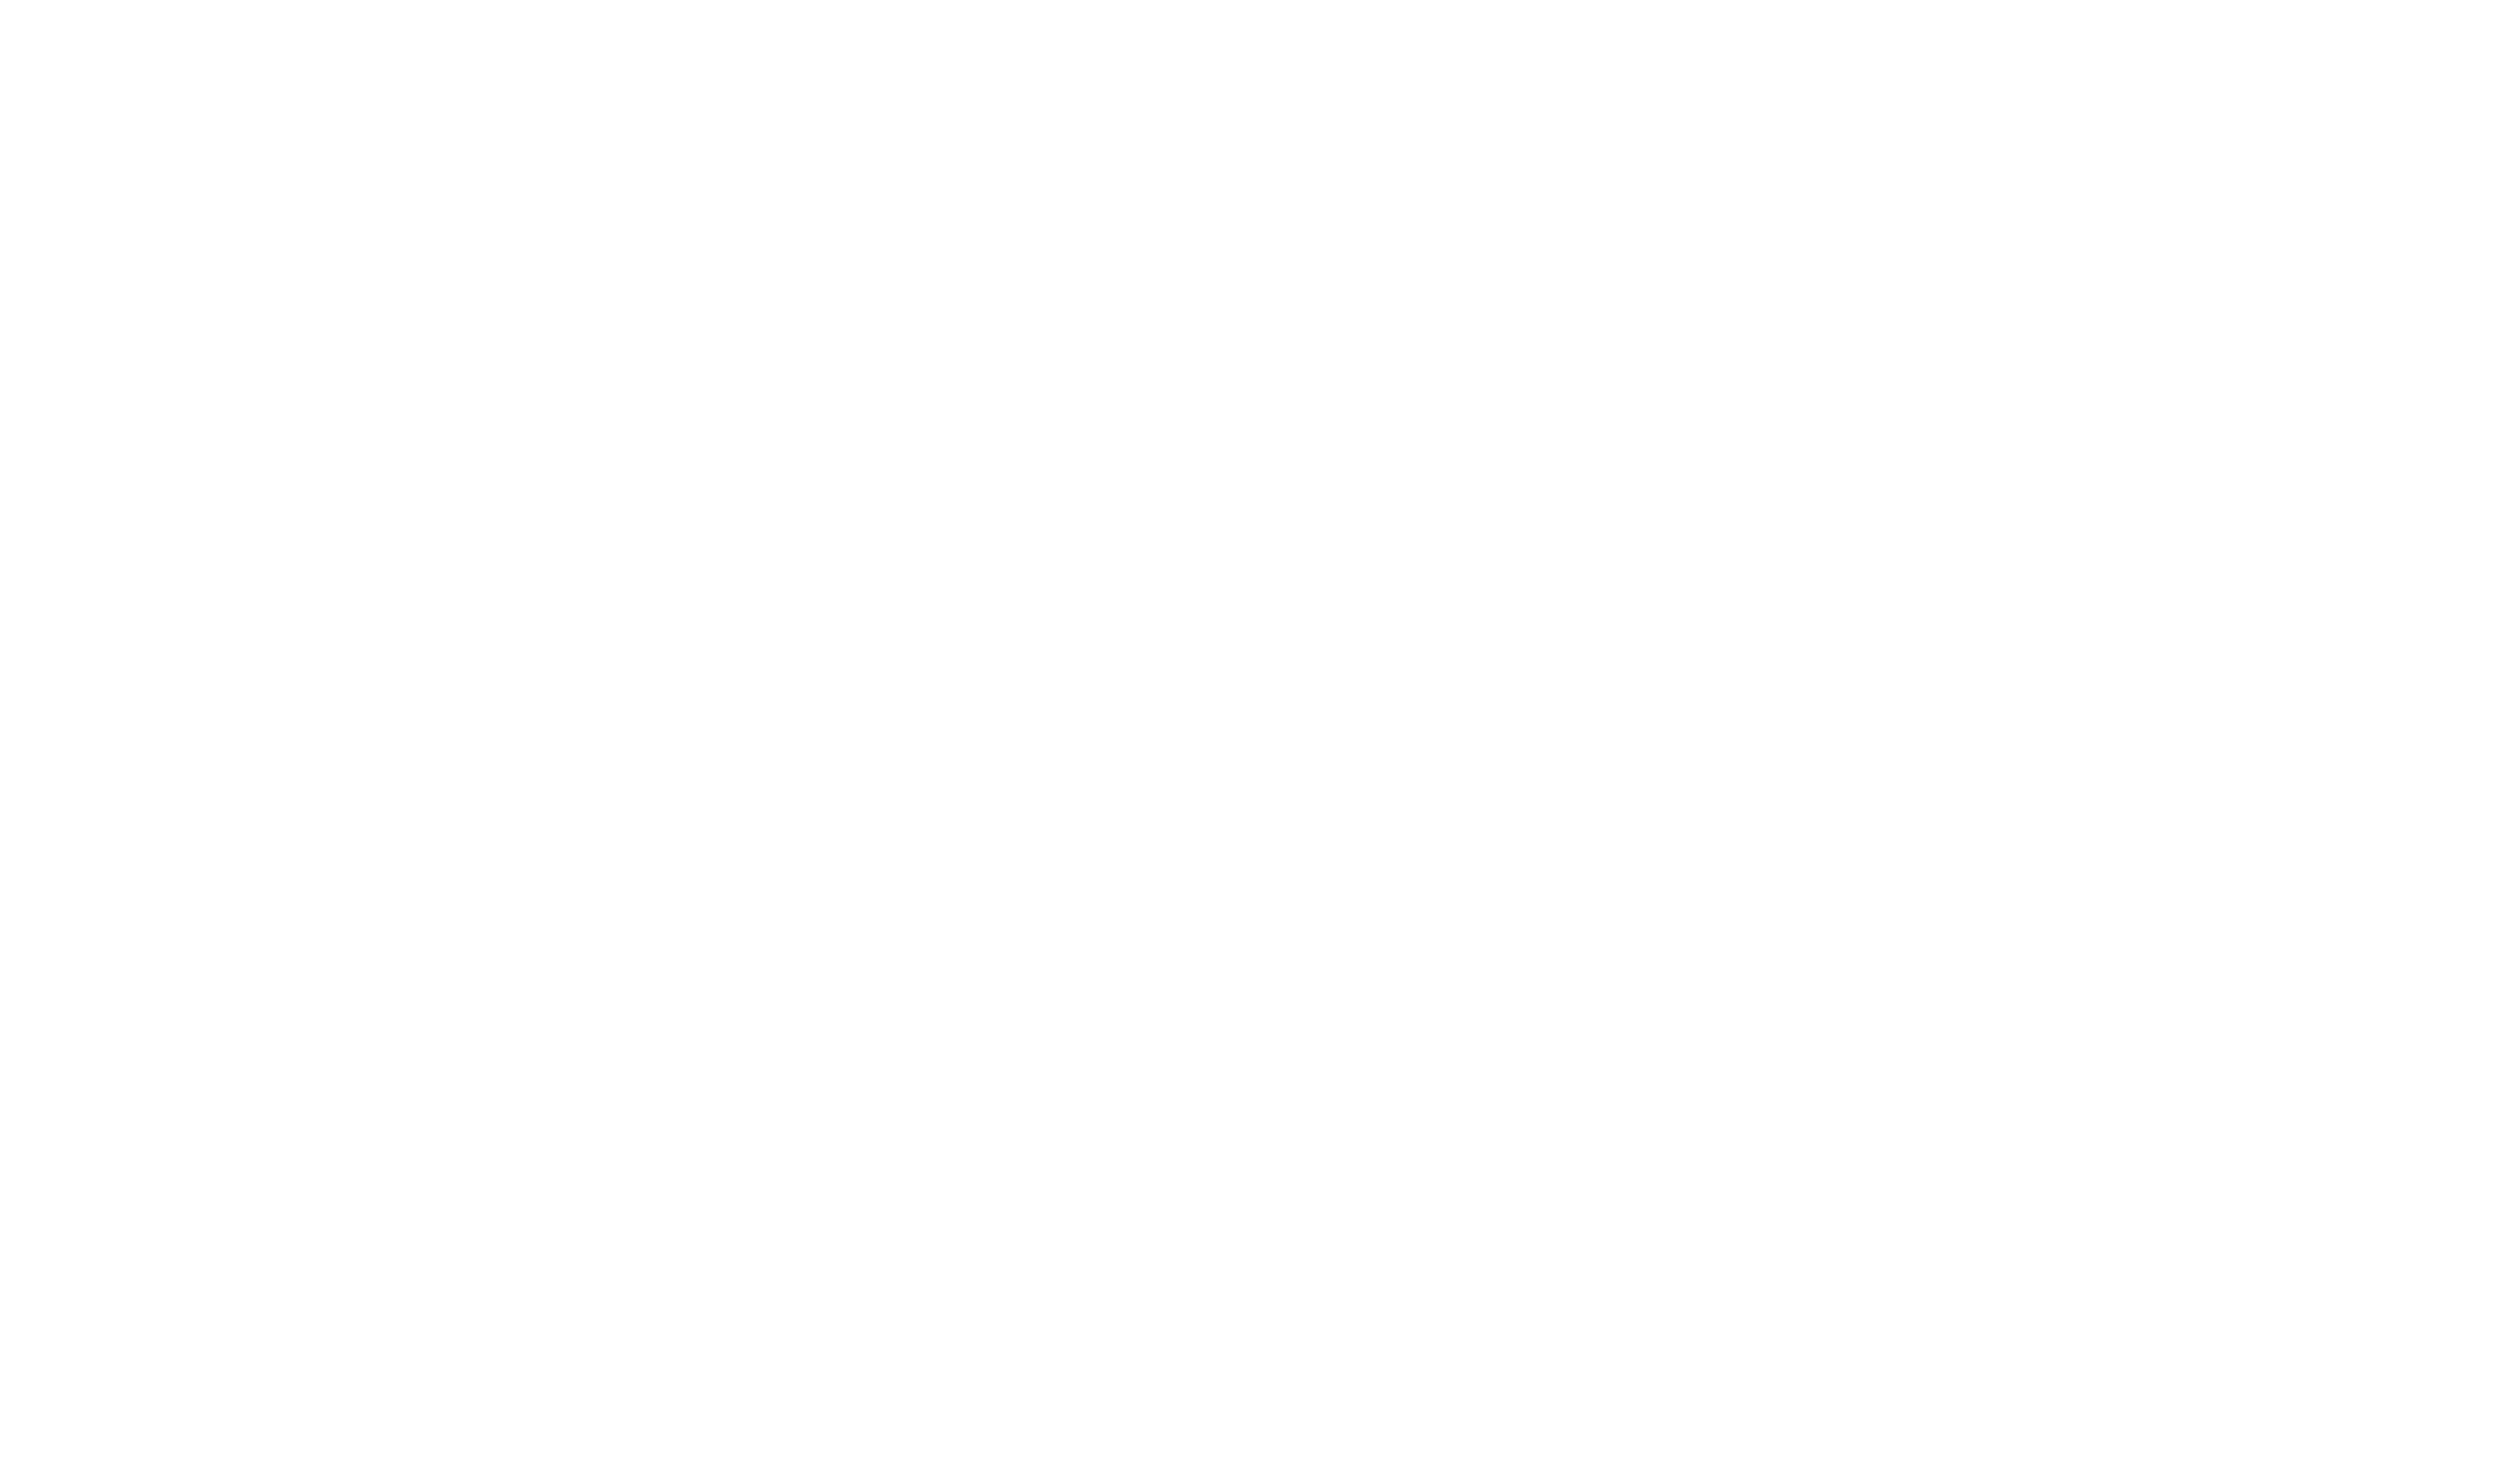 Sibville logo and wordmark in while